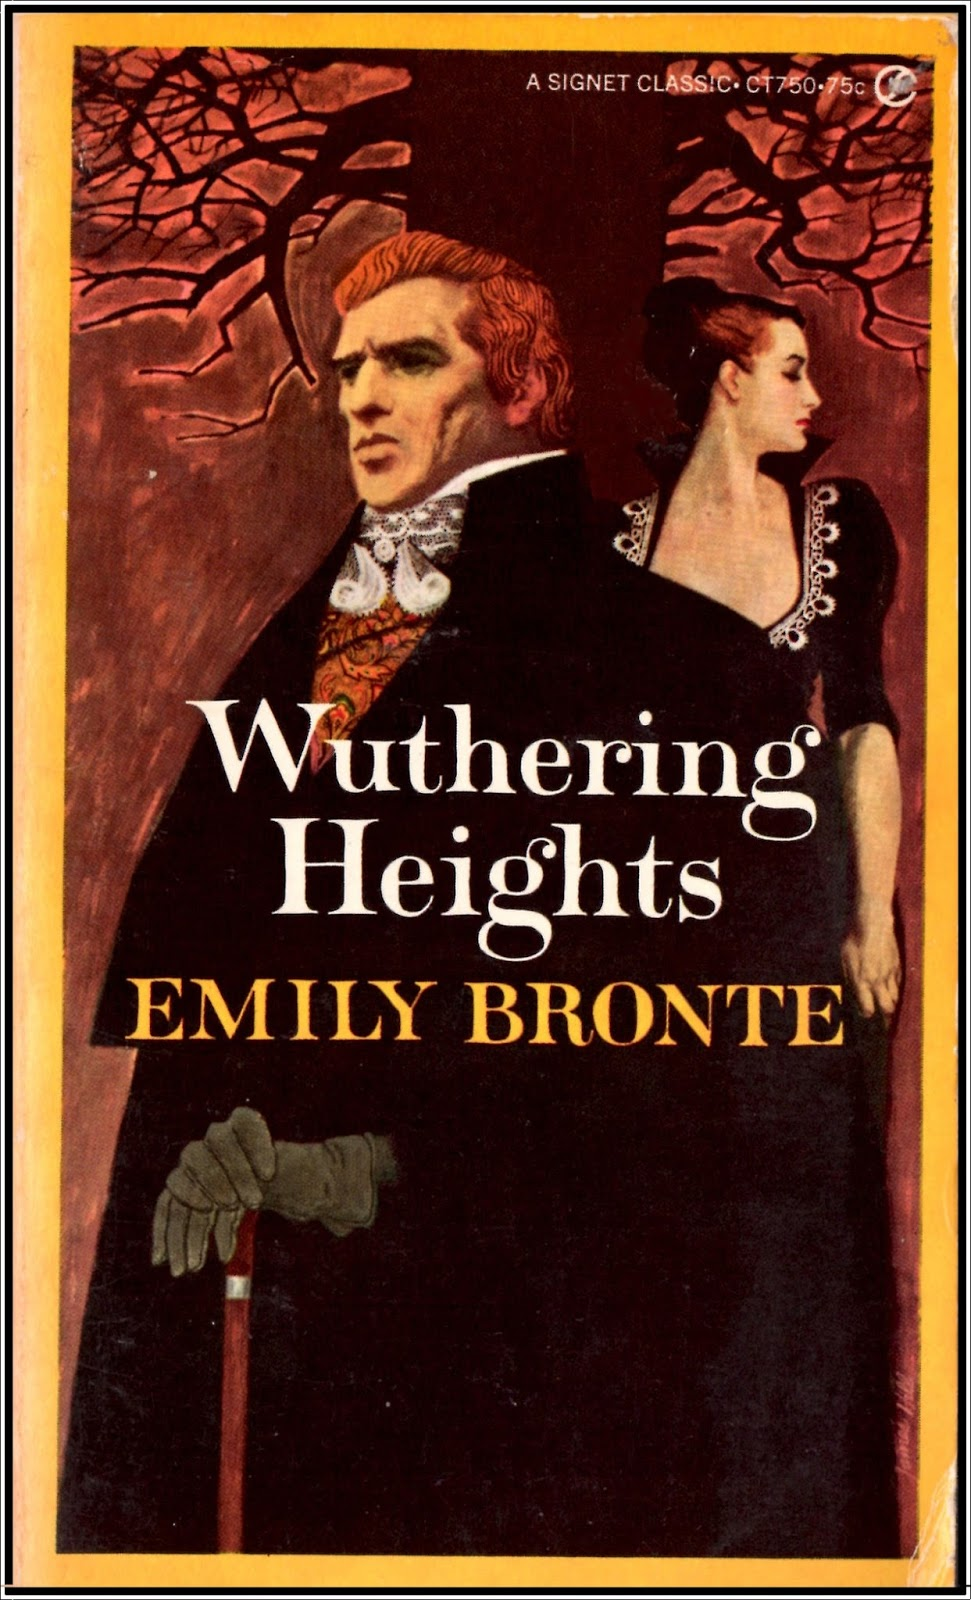 wuthering heights relation to emily bronte s Wuthering heights by emily bronte introduction by s e hinton about wuthering heights related articles.